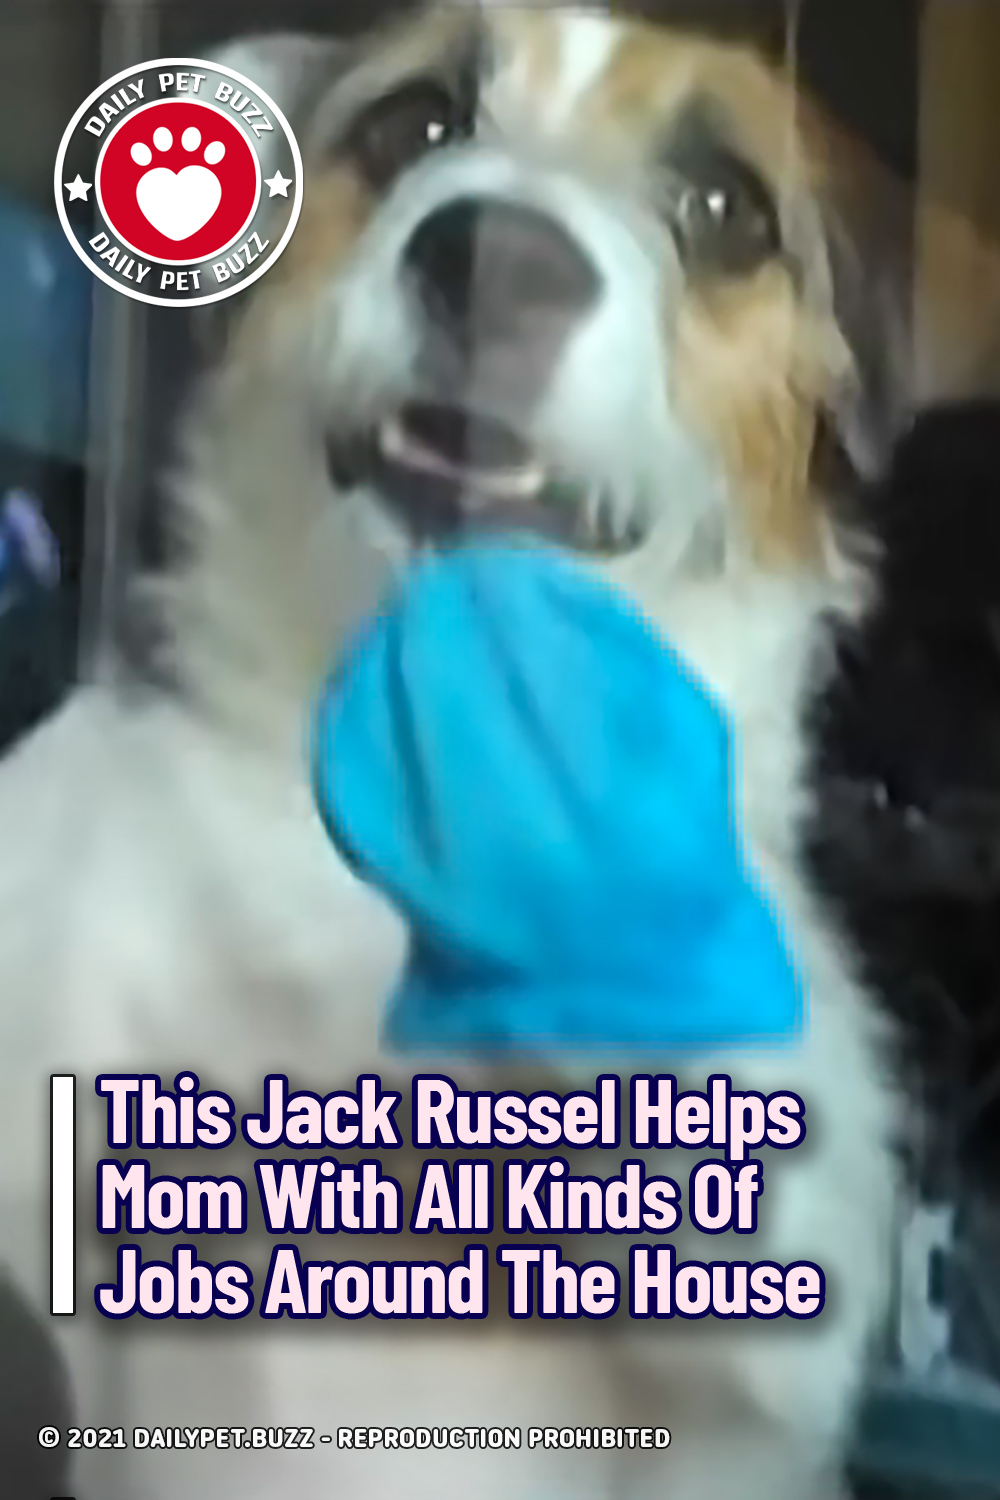 This Jack Russel Helps Mom With All Kinds Of Jobs Around The House